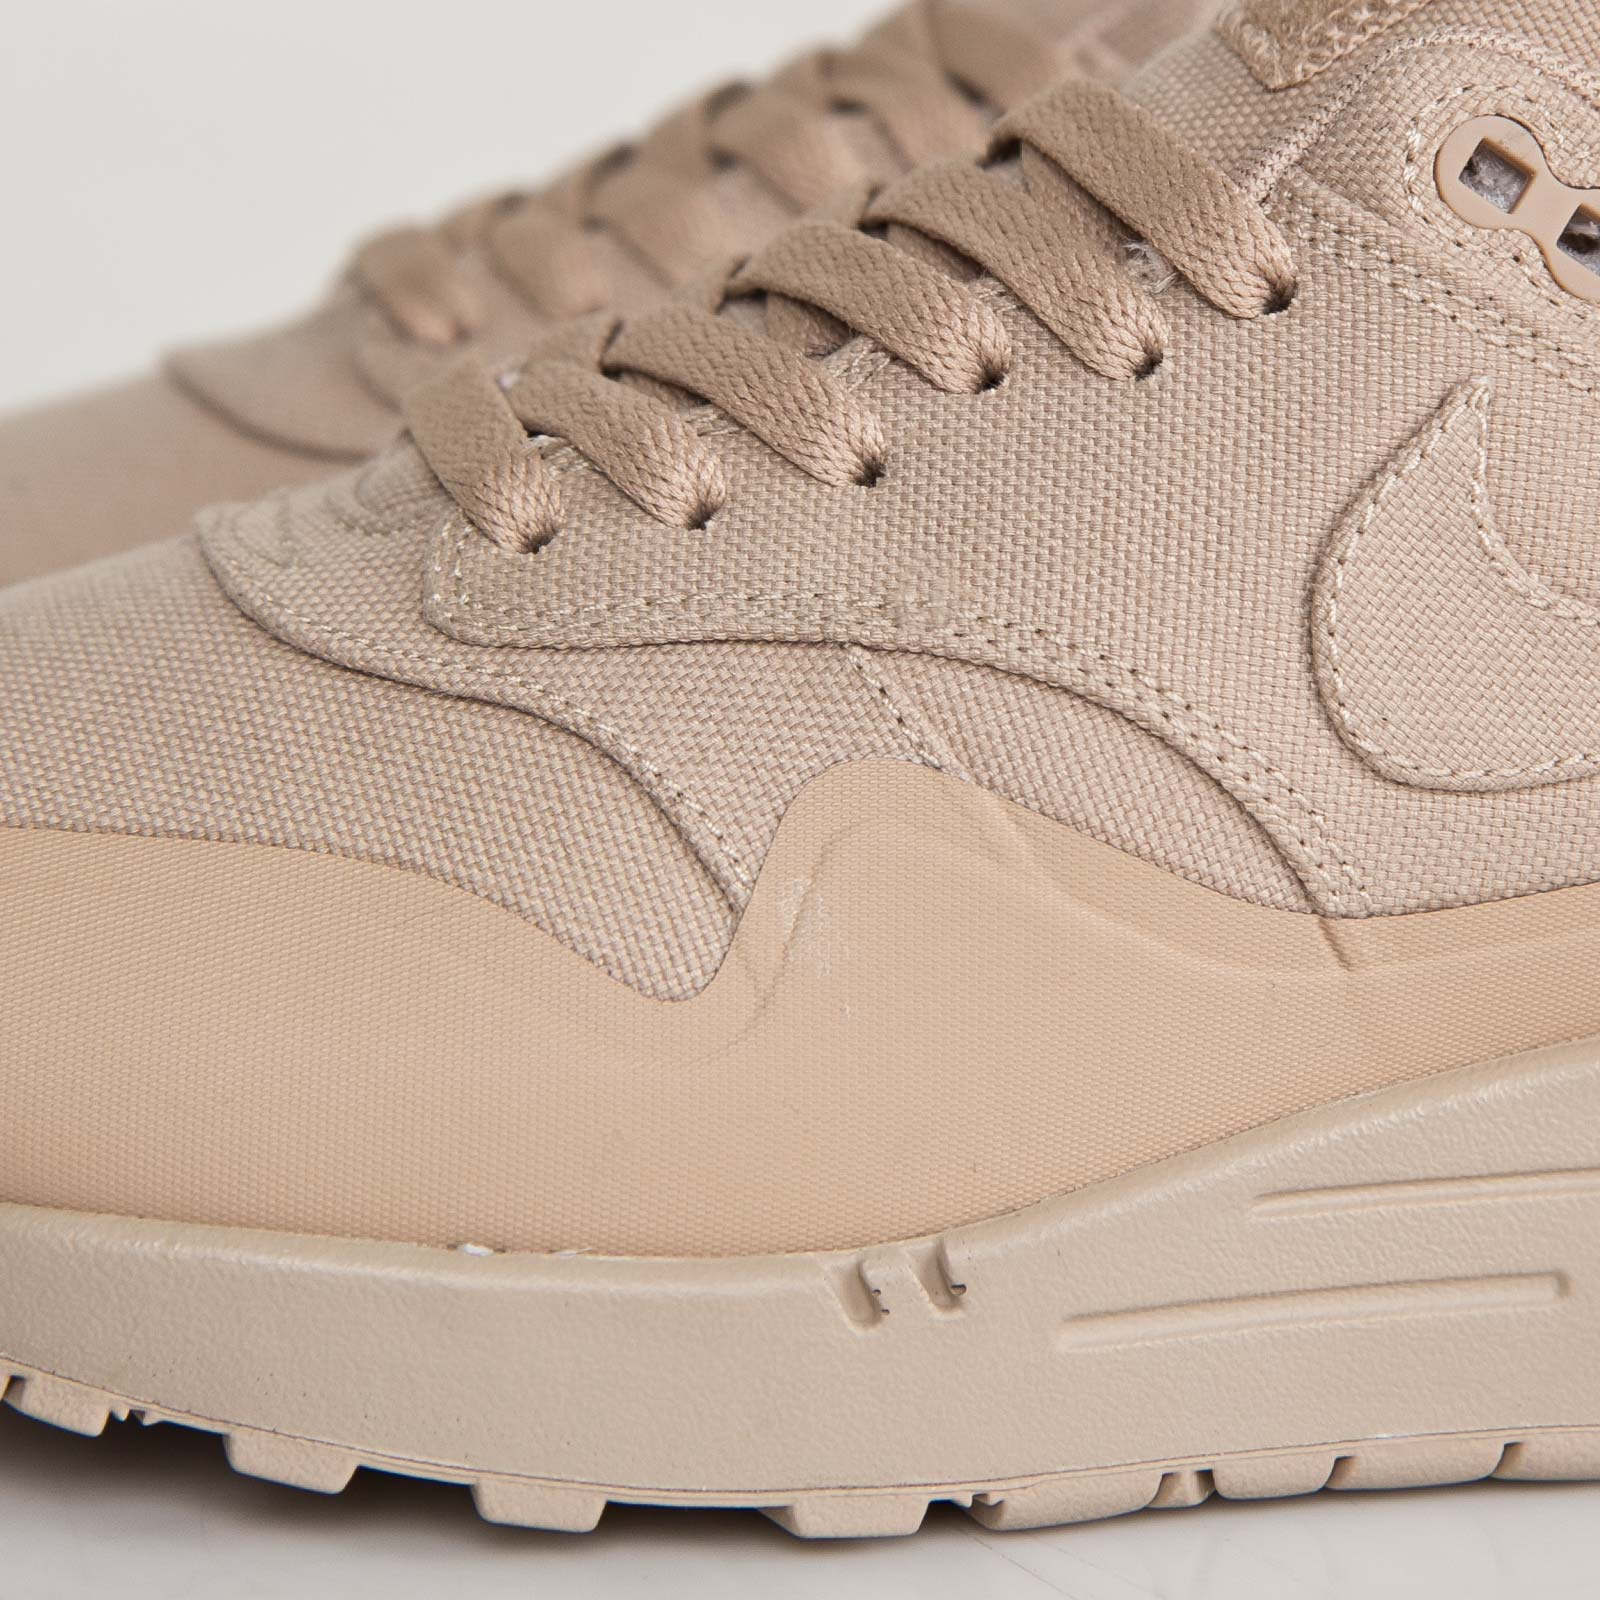 965594e1a2 Nike Air Max 1 V SP - 704901-200 - Sneakersnstuff | sneakers ...